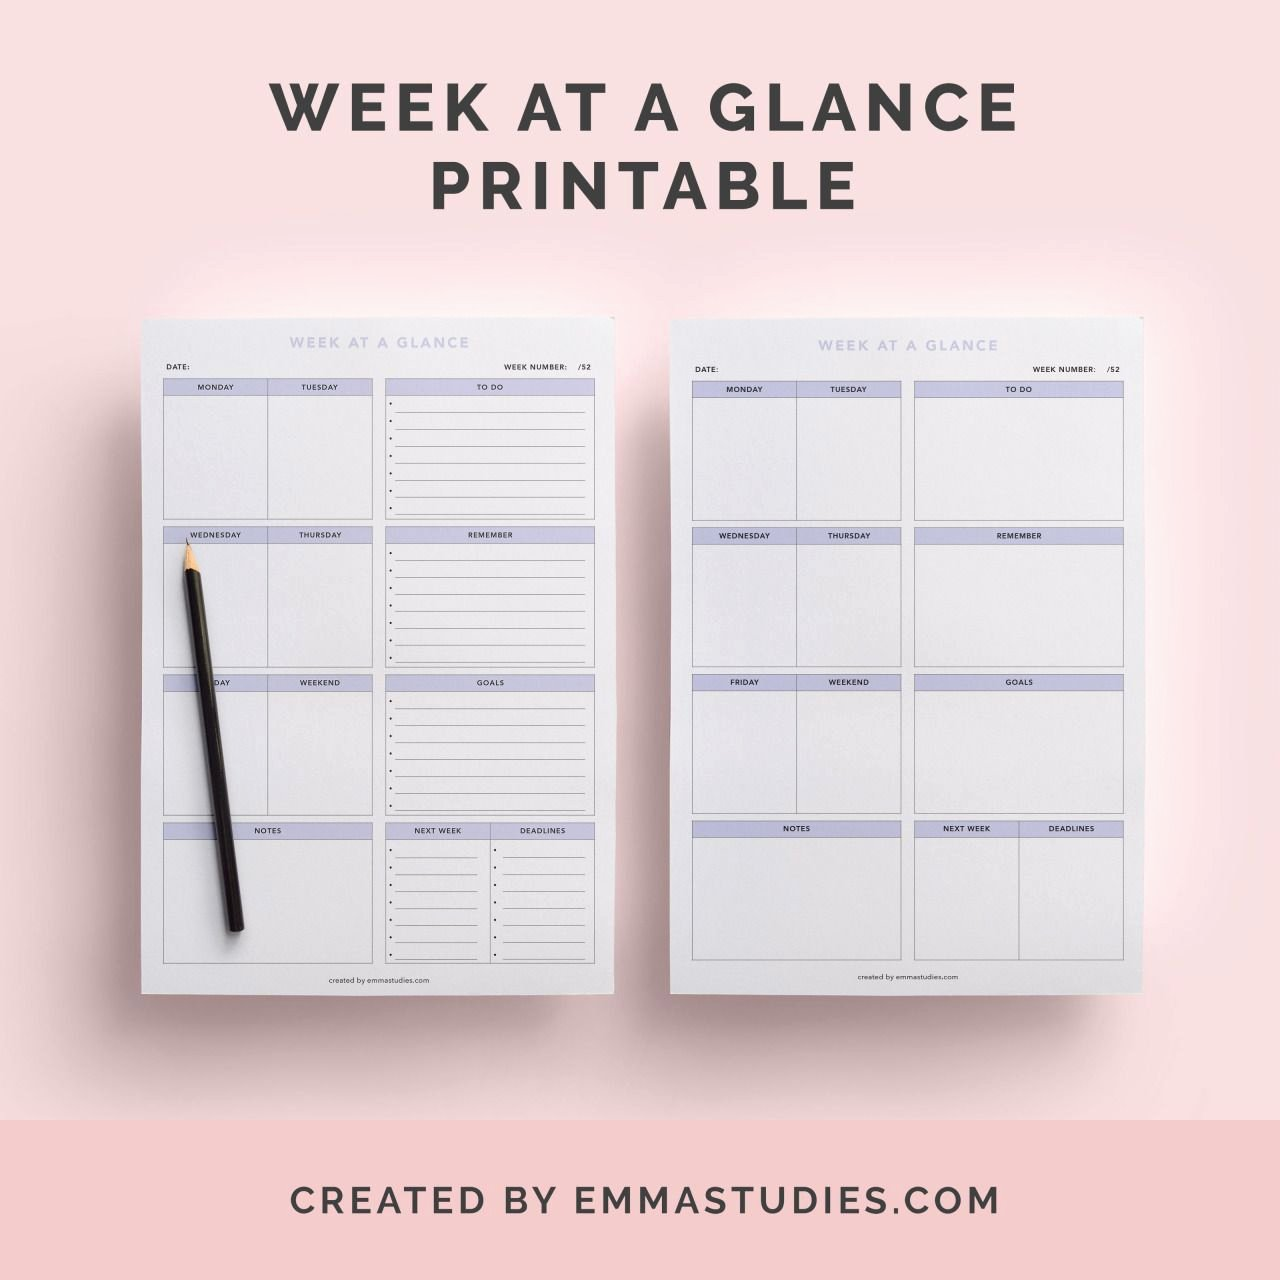 Week at A Glance Templates Best Of Week at A Glance Weekly Schedule Free Printable for